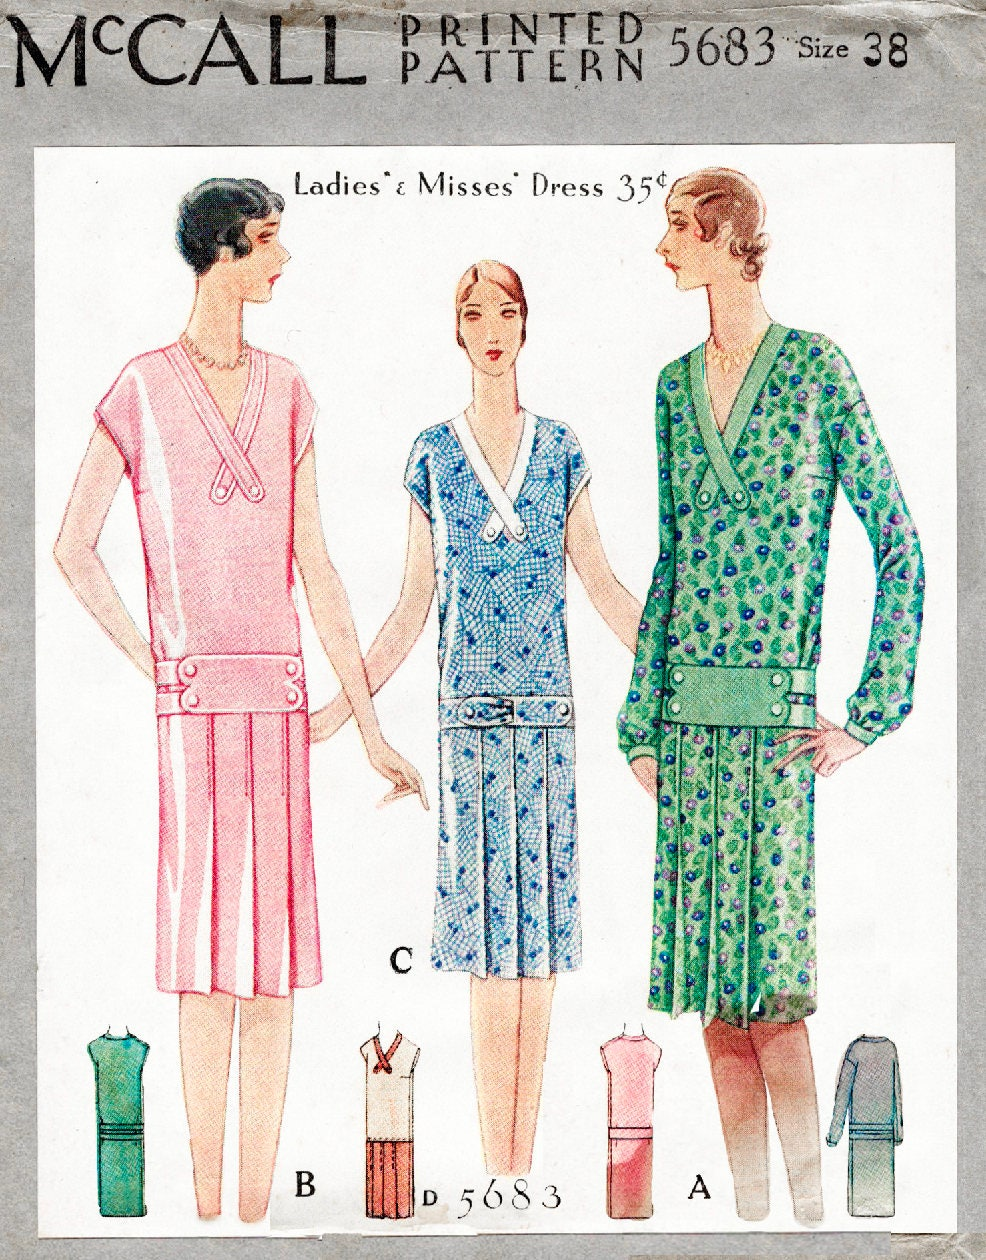 c7559fab918 1920s 20s flapper dress vintage sewing pattern reproduction    3 styles     pleat skirt    drop waist    bust 38 from LadyMarlowePatterns on Etsy Studio